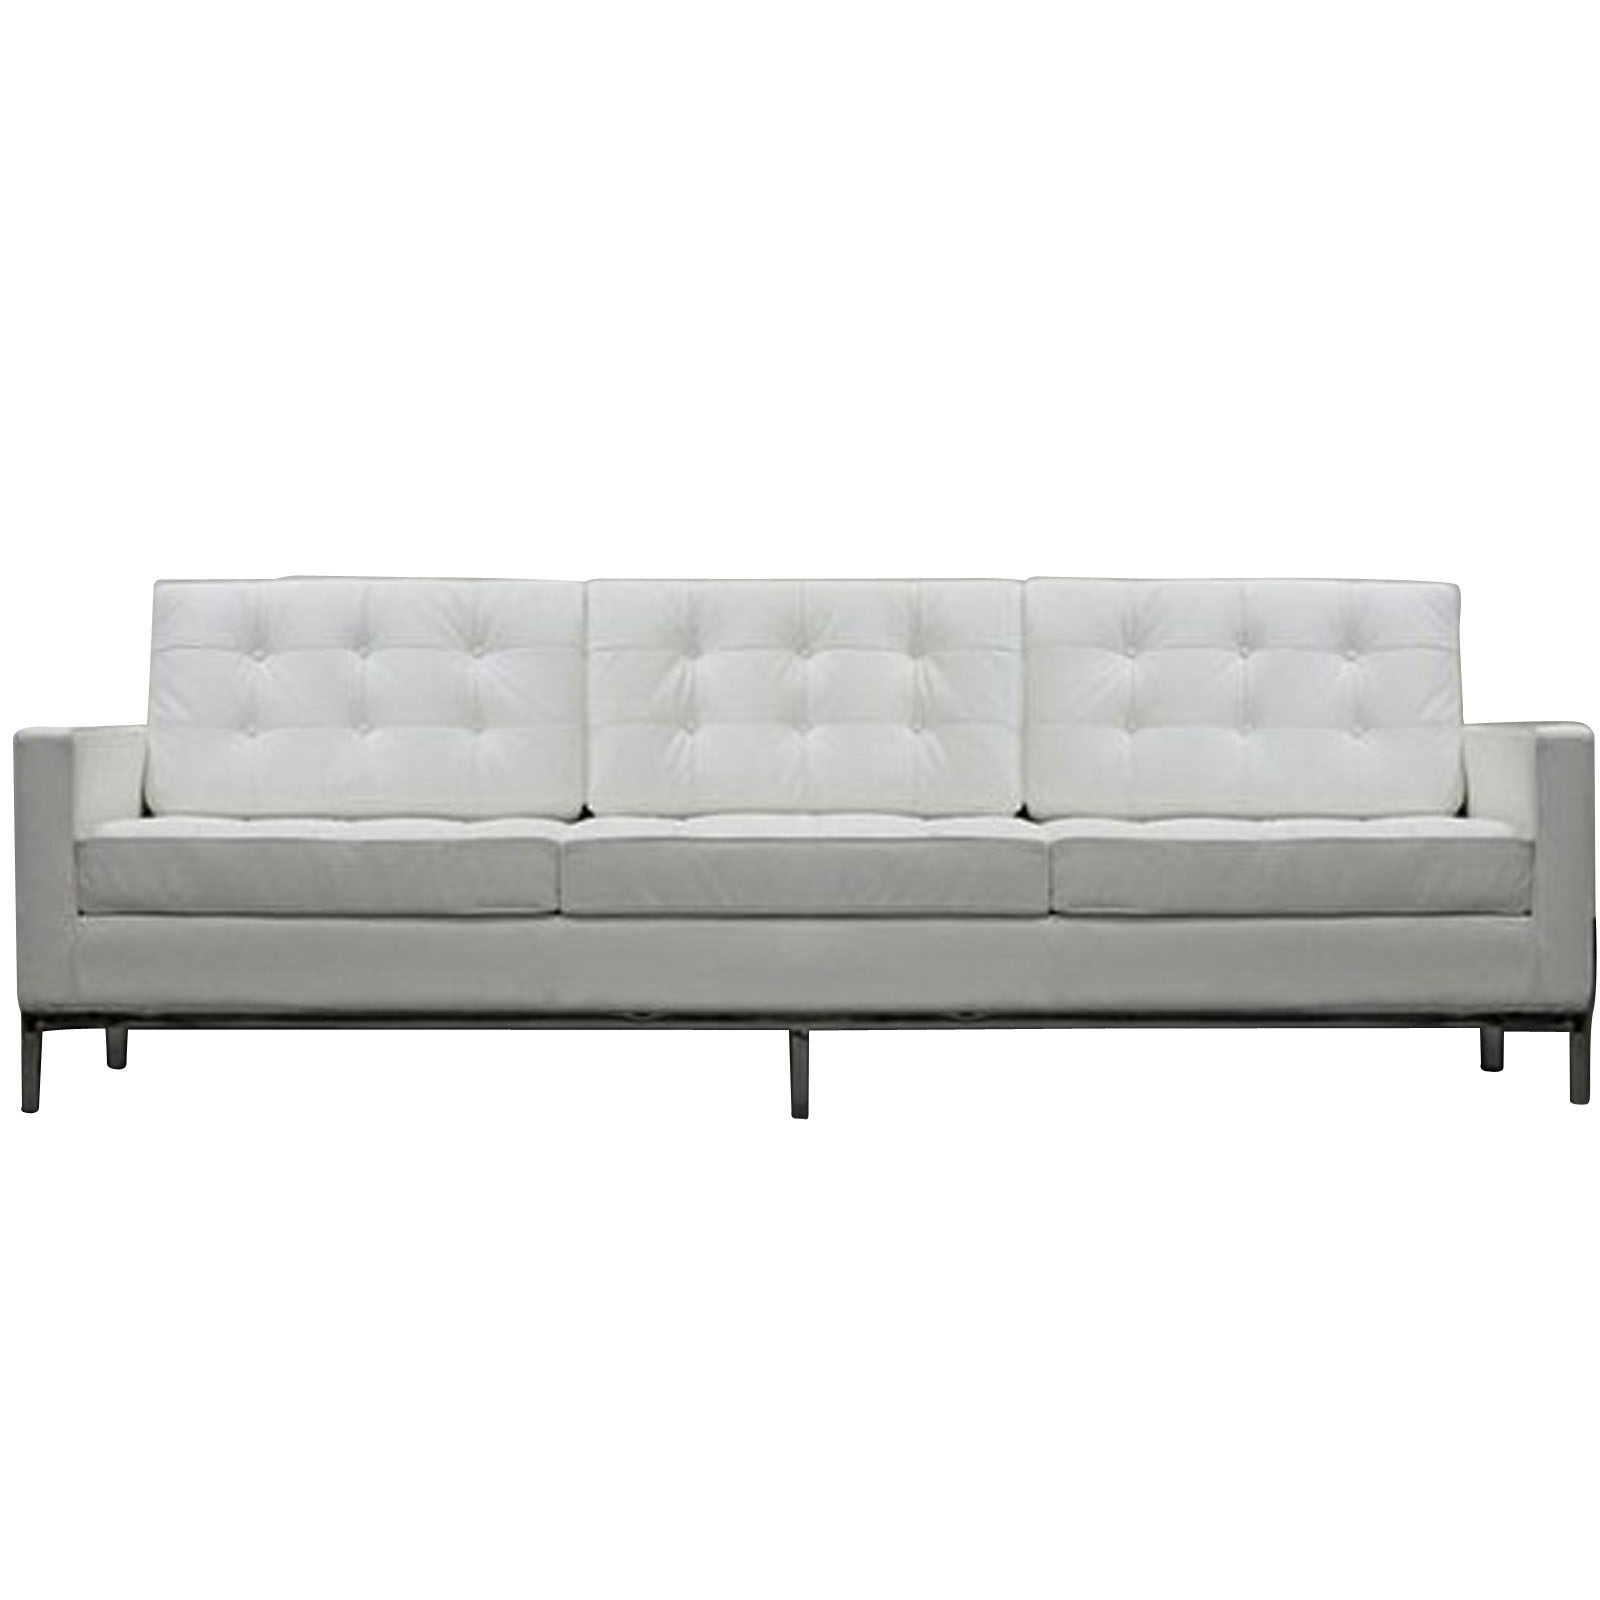 Florence Knoll Style Sofa Couch – Leather With Most Current Florence Knoll Wood Legs Sofas (View 10 of 15)